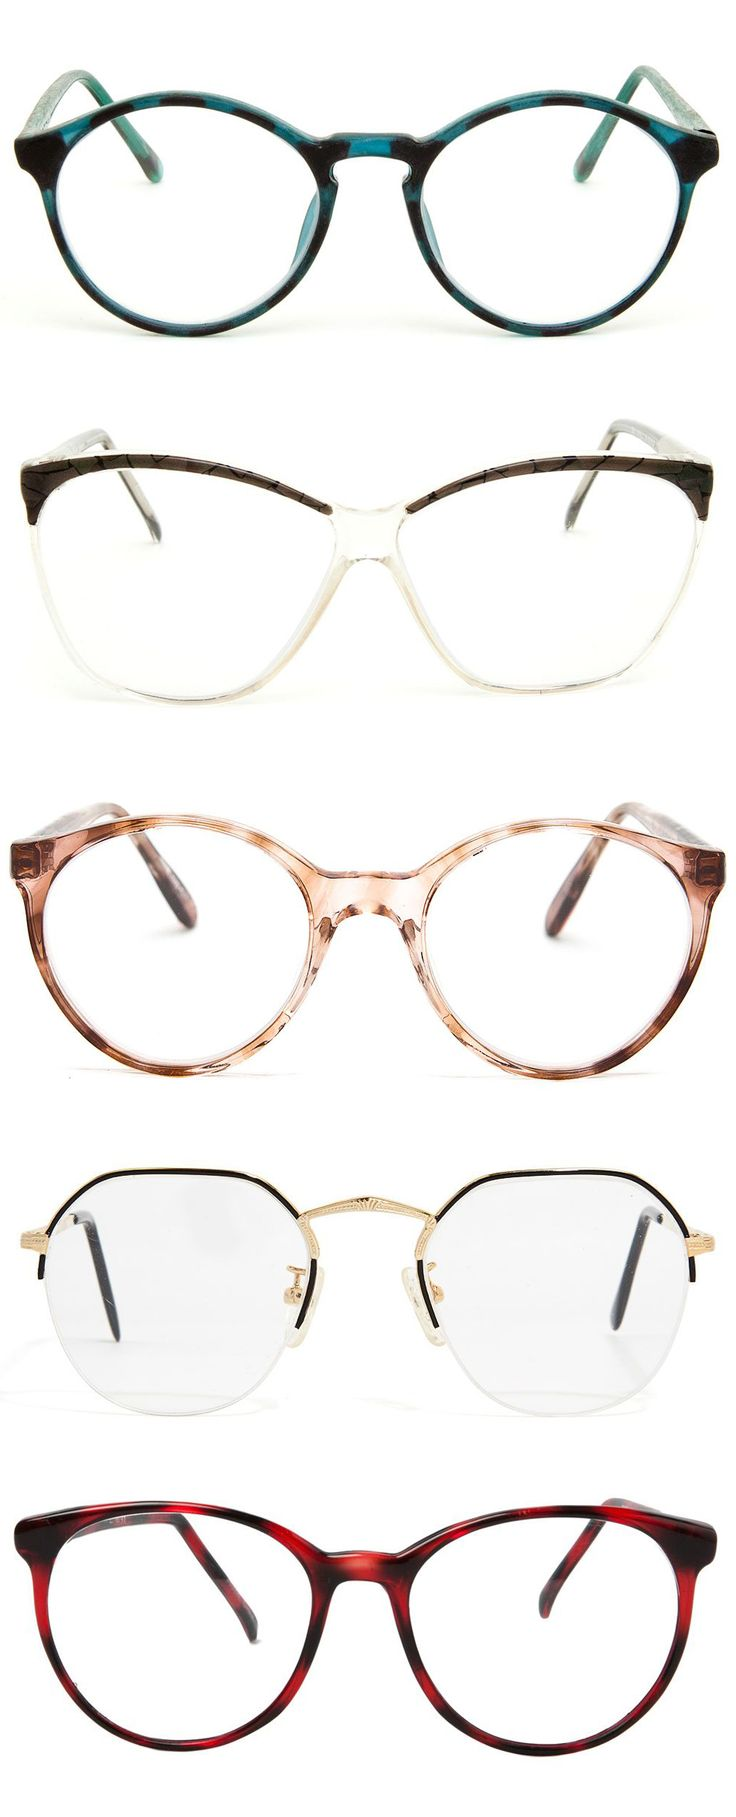 Vintage and Deadstock Eyewear selected by #AmericanApparel